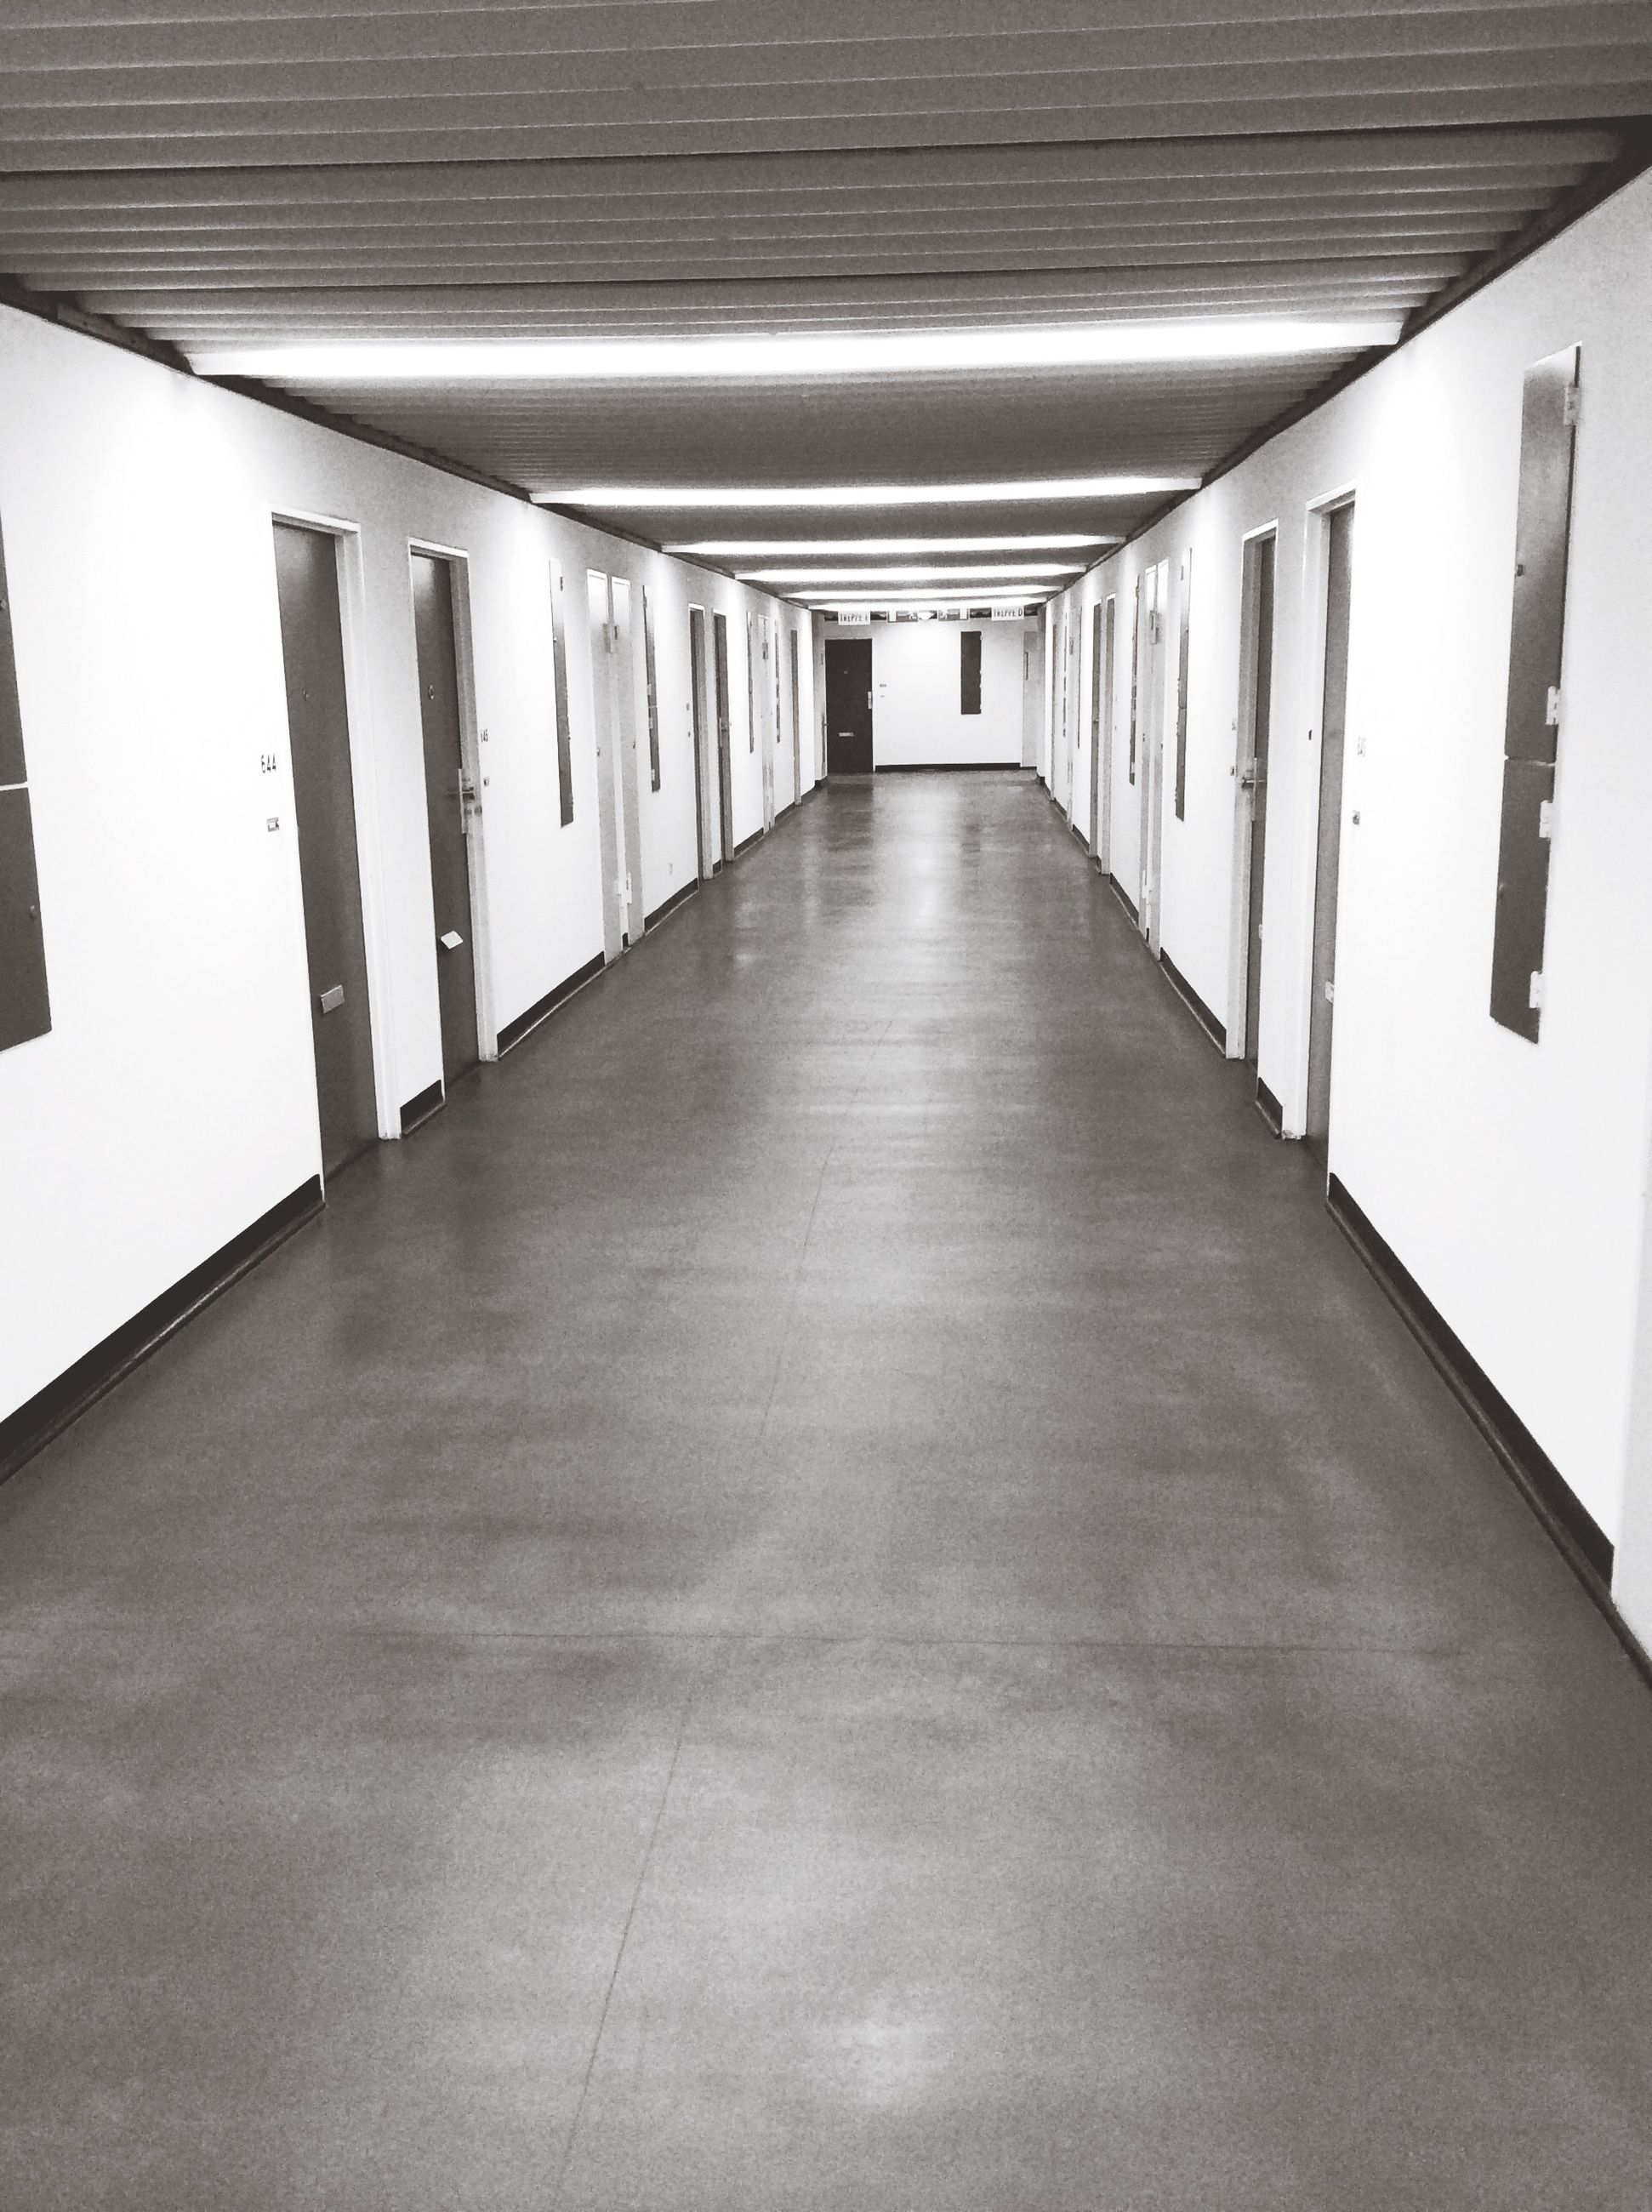 indoors, diminishing perspective, architecture, the way forward, built structure, ceiling, in a row, corridor, vanishing point, empty, long, absence, narrow, no people, architectural column, flooring, column, building, day, modern